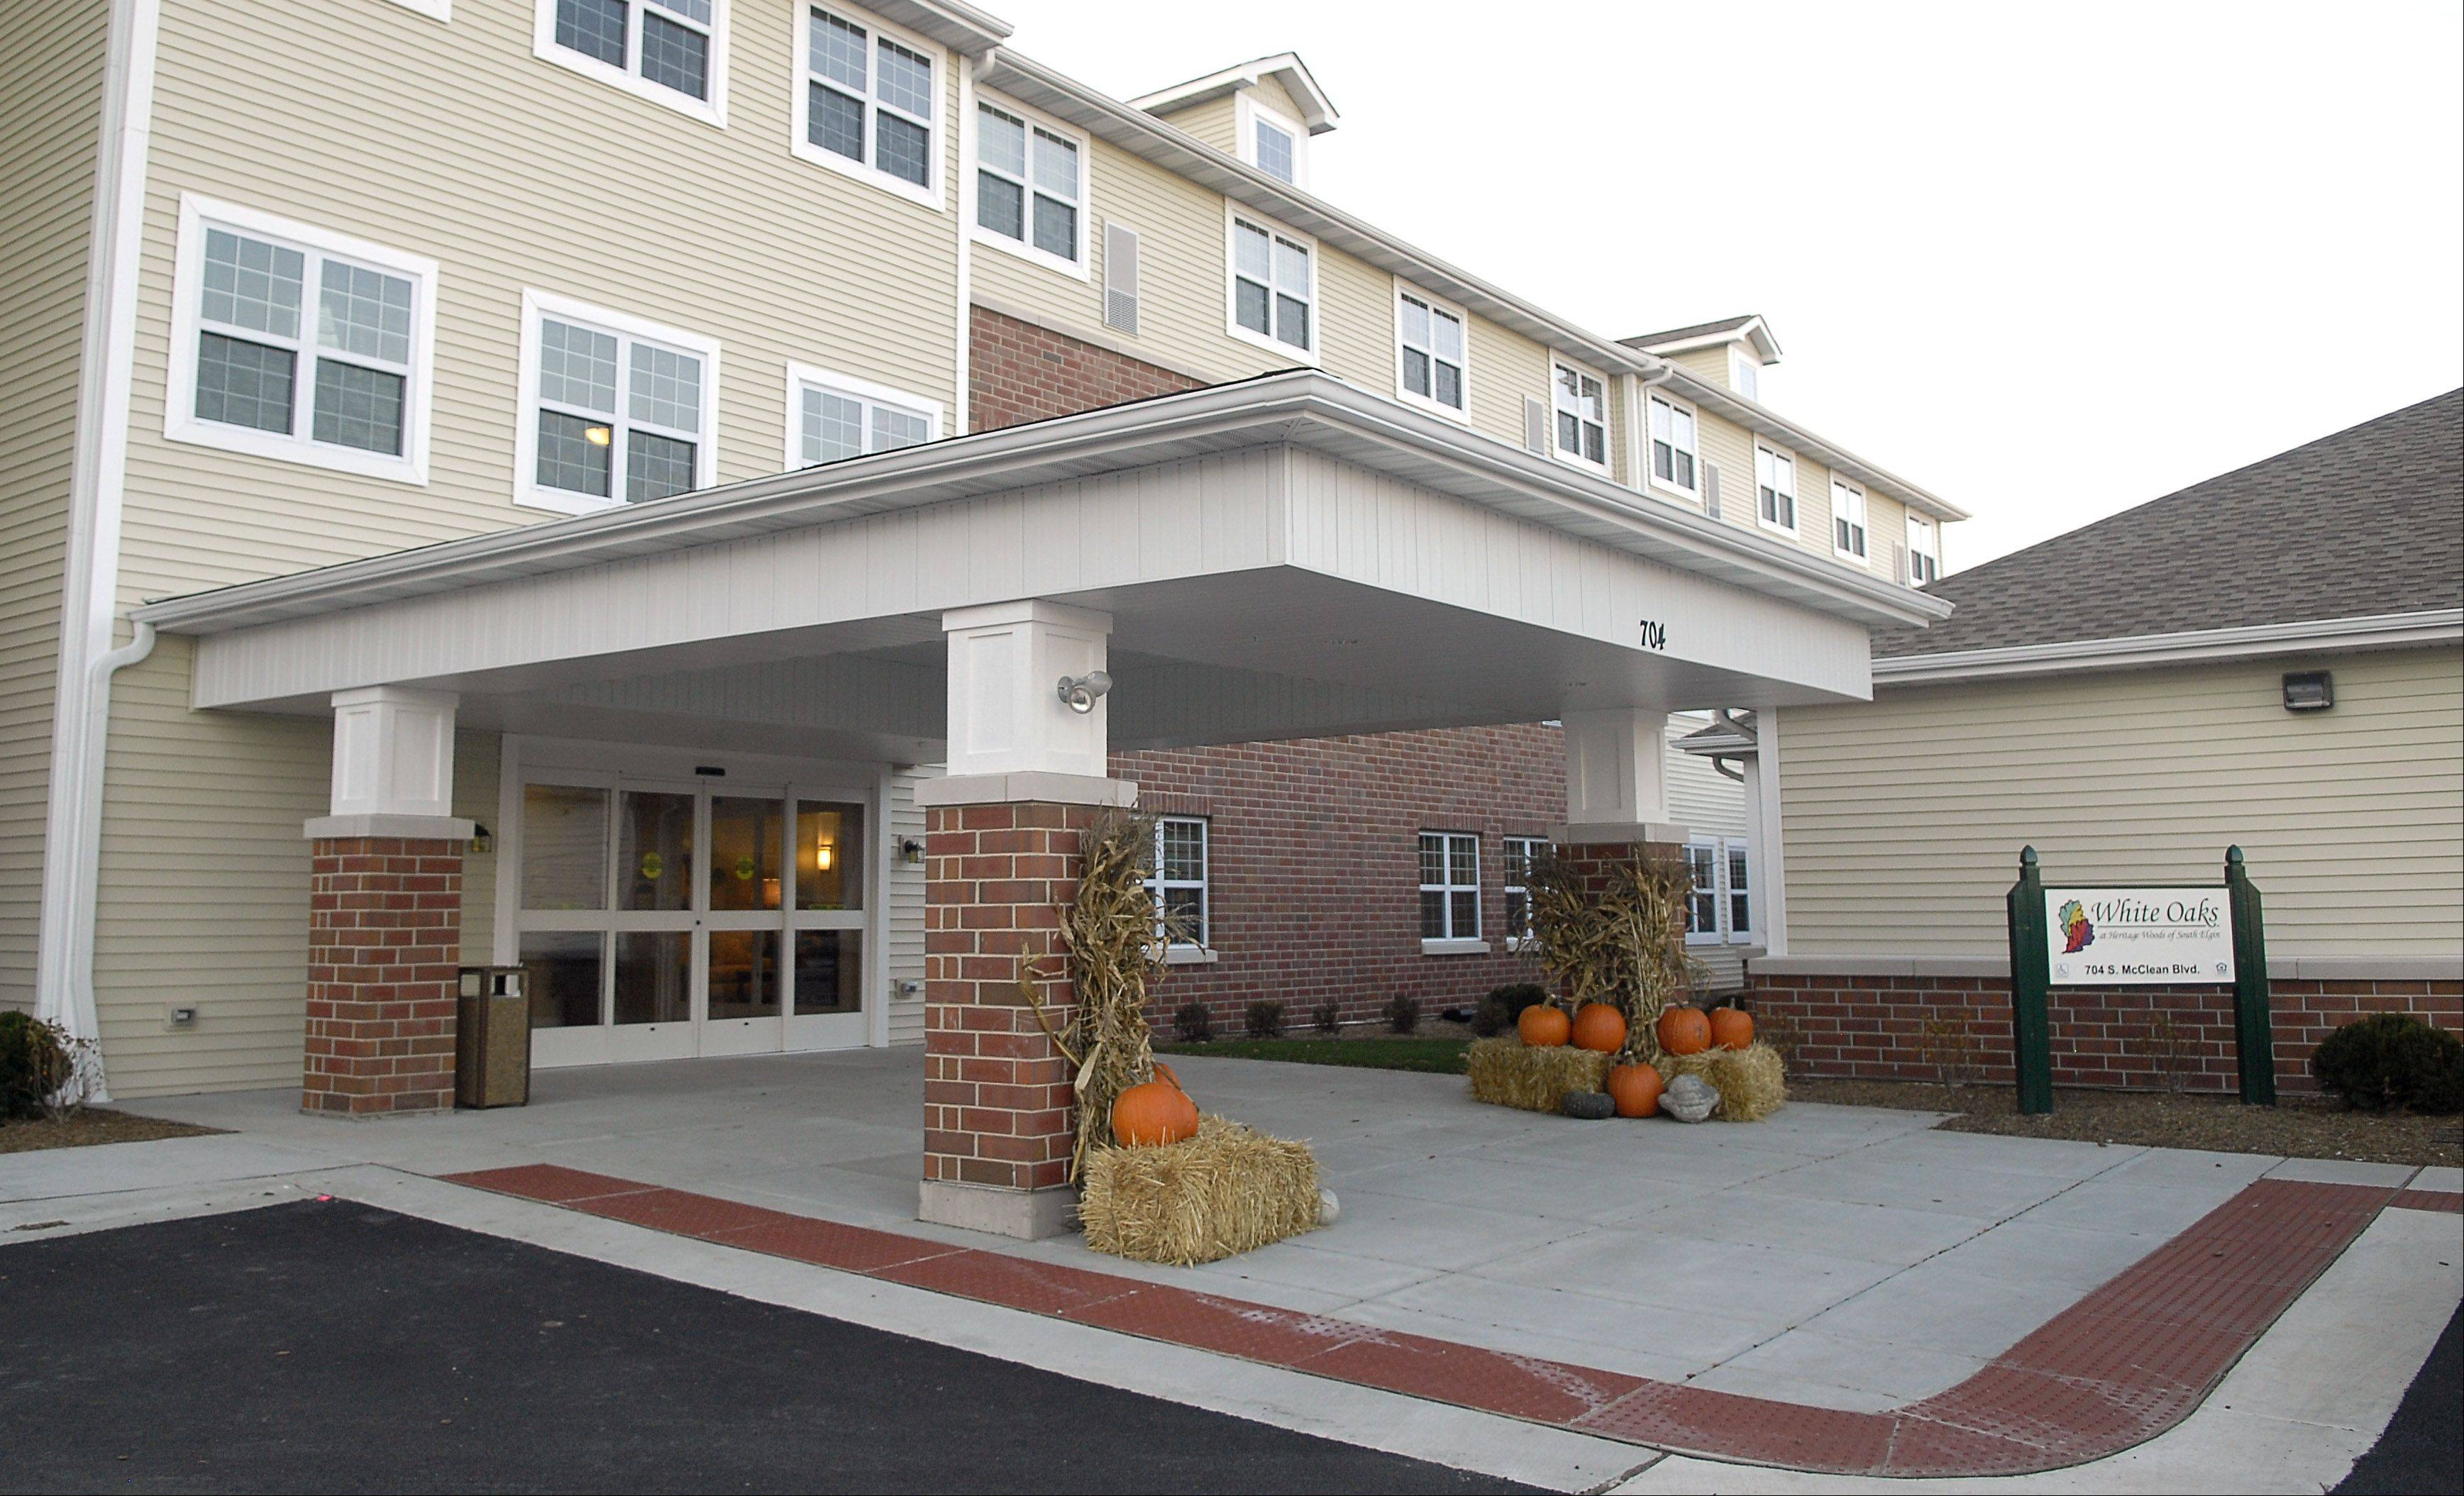 White Oaks at Heritage Woods of South Elgin offers 32 apartment homes for seniors older than 65 with Alzheimer's disease or related dementia. It's an addition to the Heritage Woods assisted-living facility that opened in 2009.